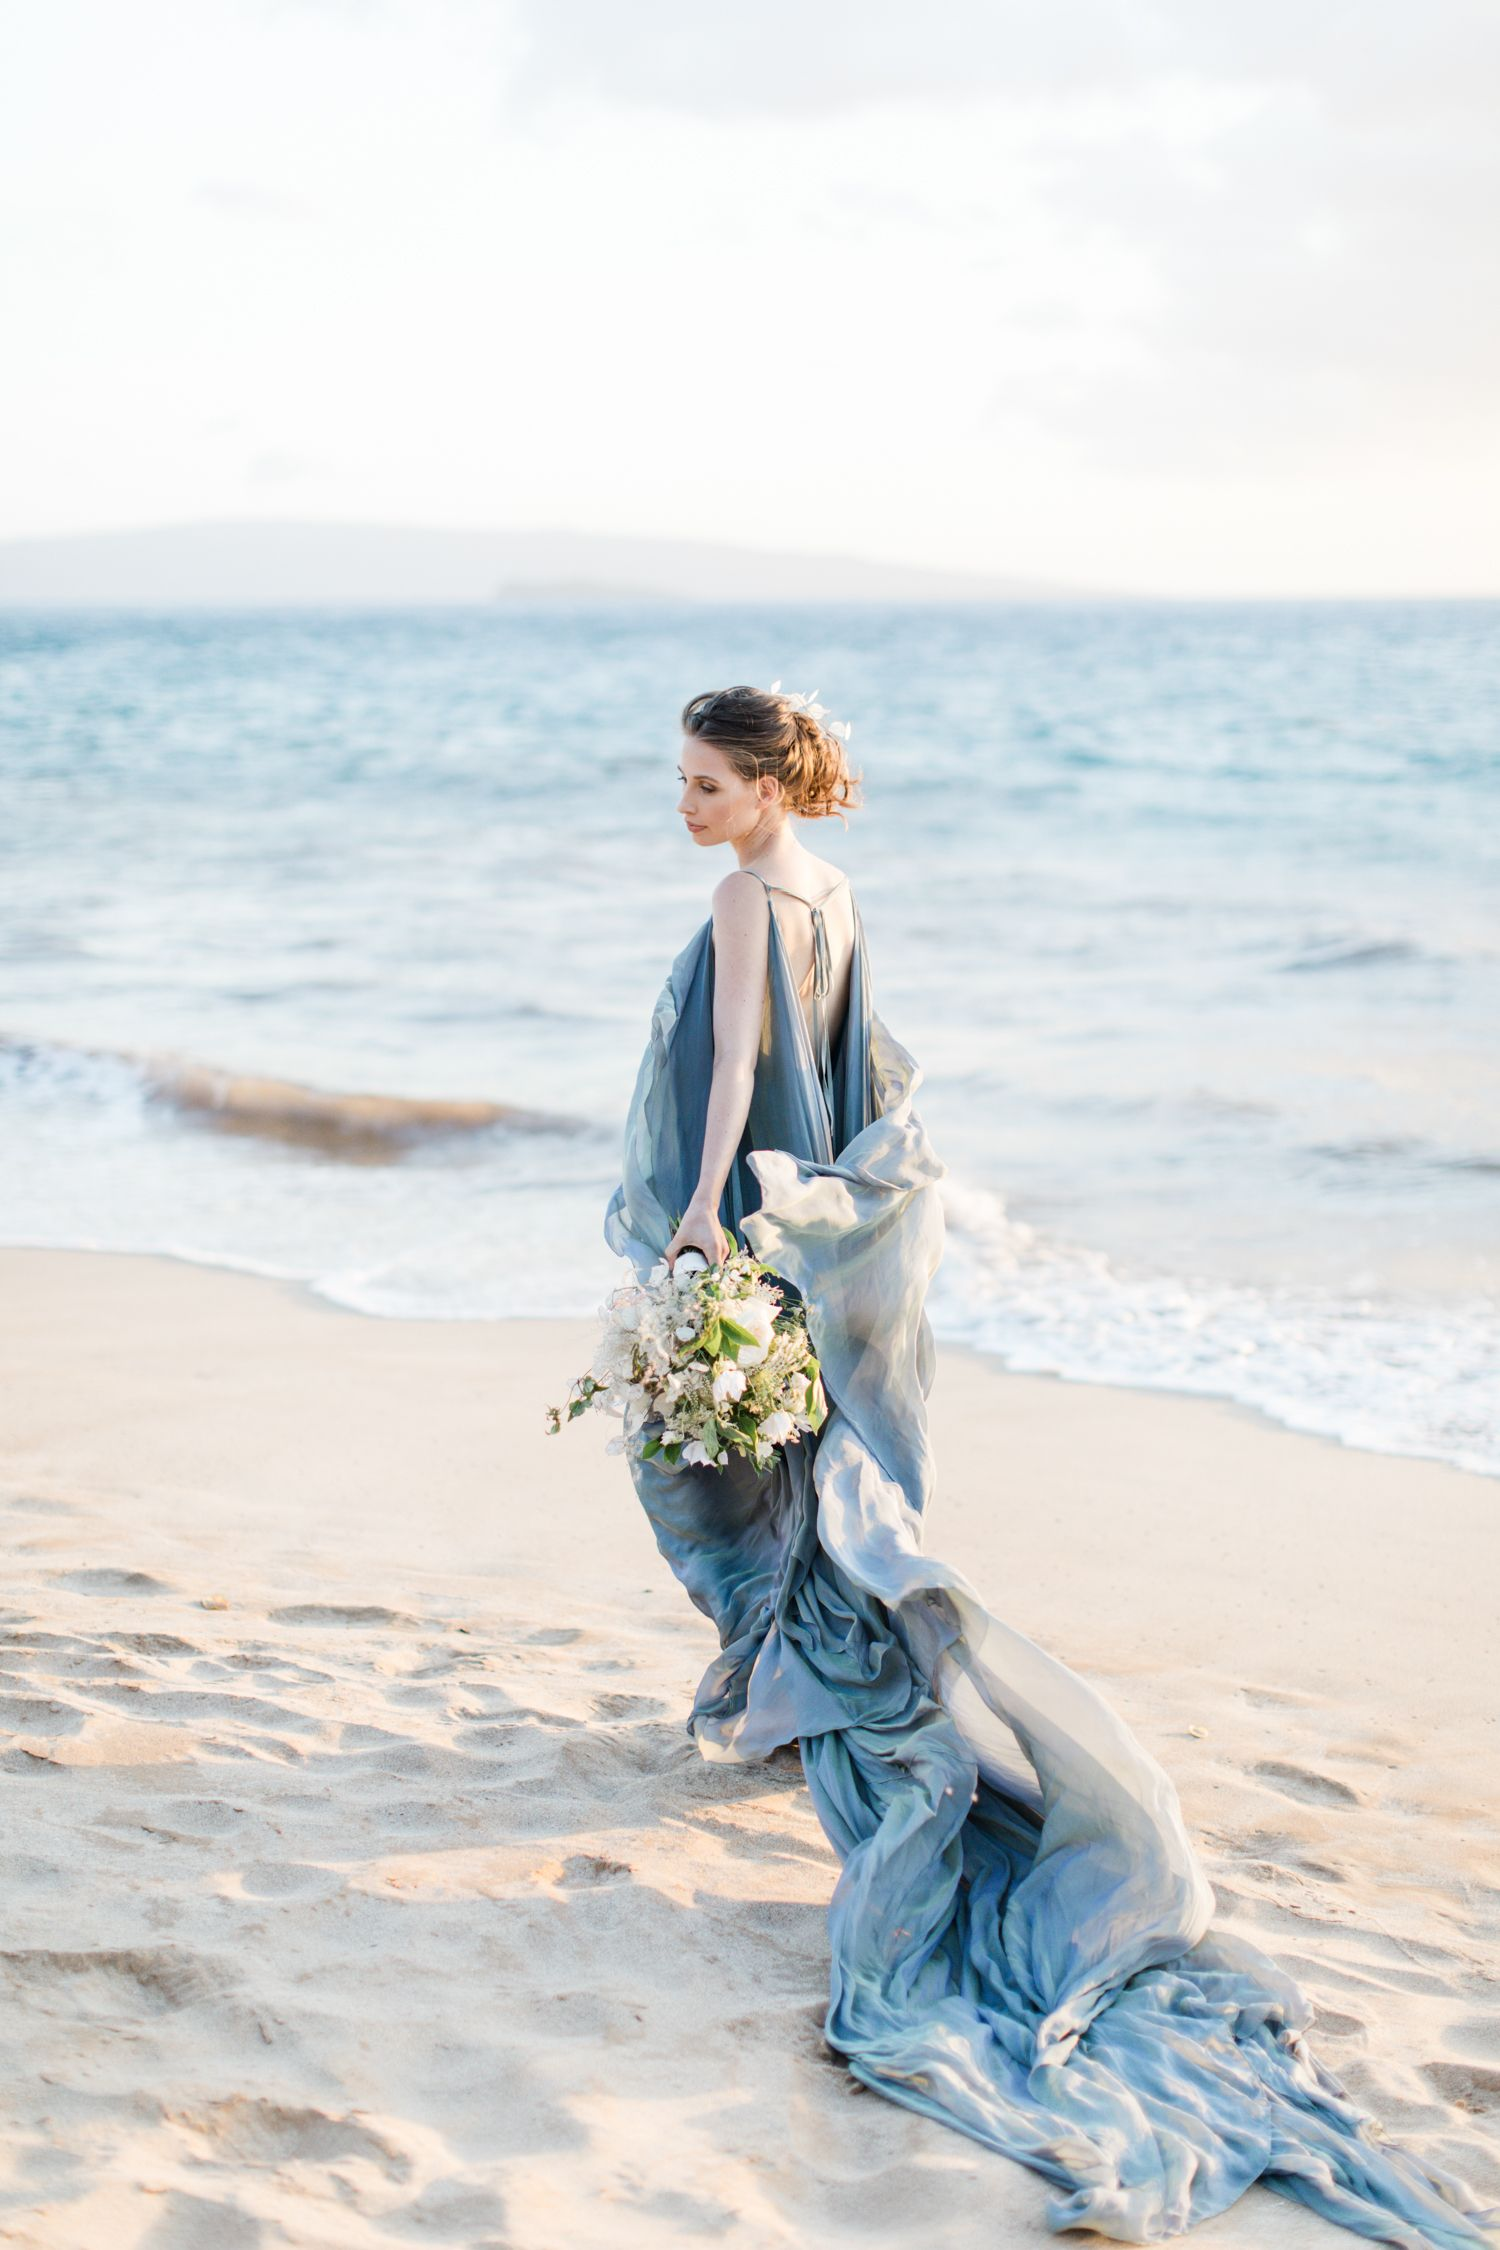 Wedding Inspiration Iana In Hawaii Dress Carol Hannah Photography Matthew Ree Of Cly By Styling Fl Design Designs